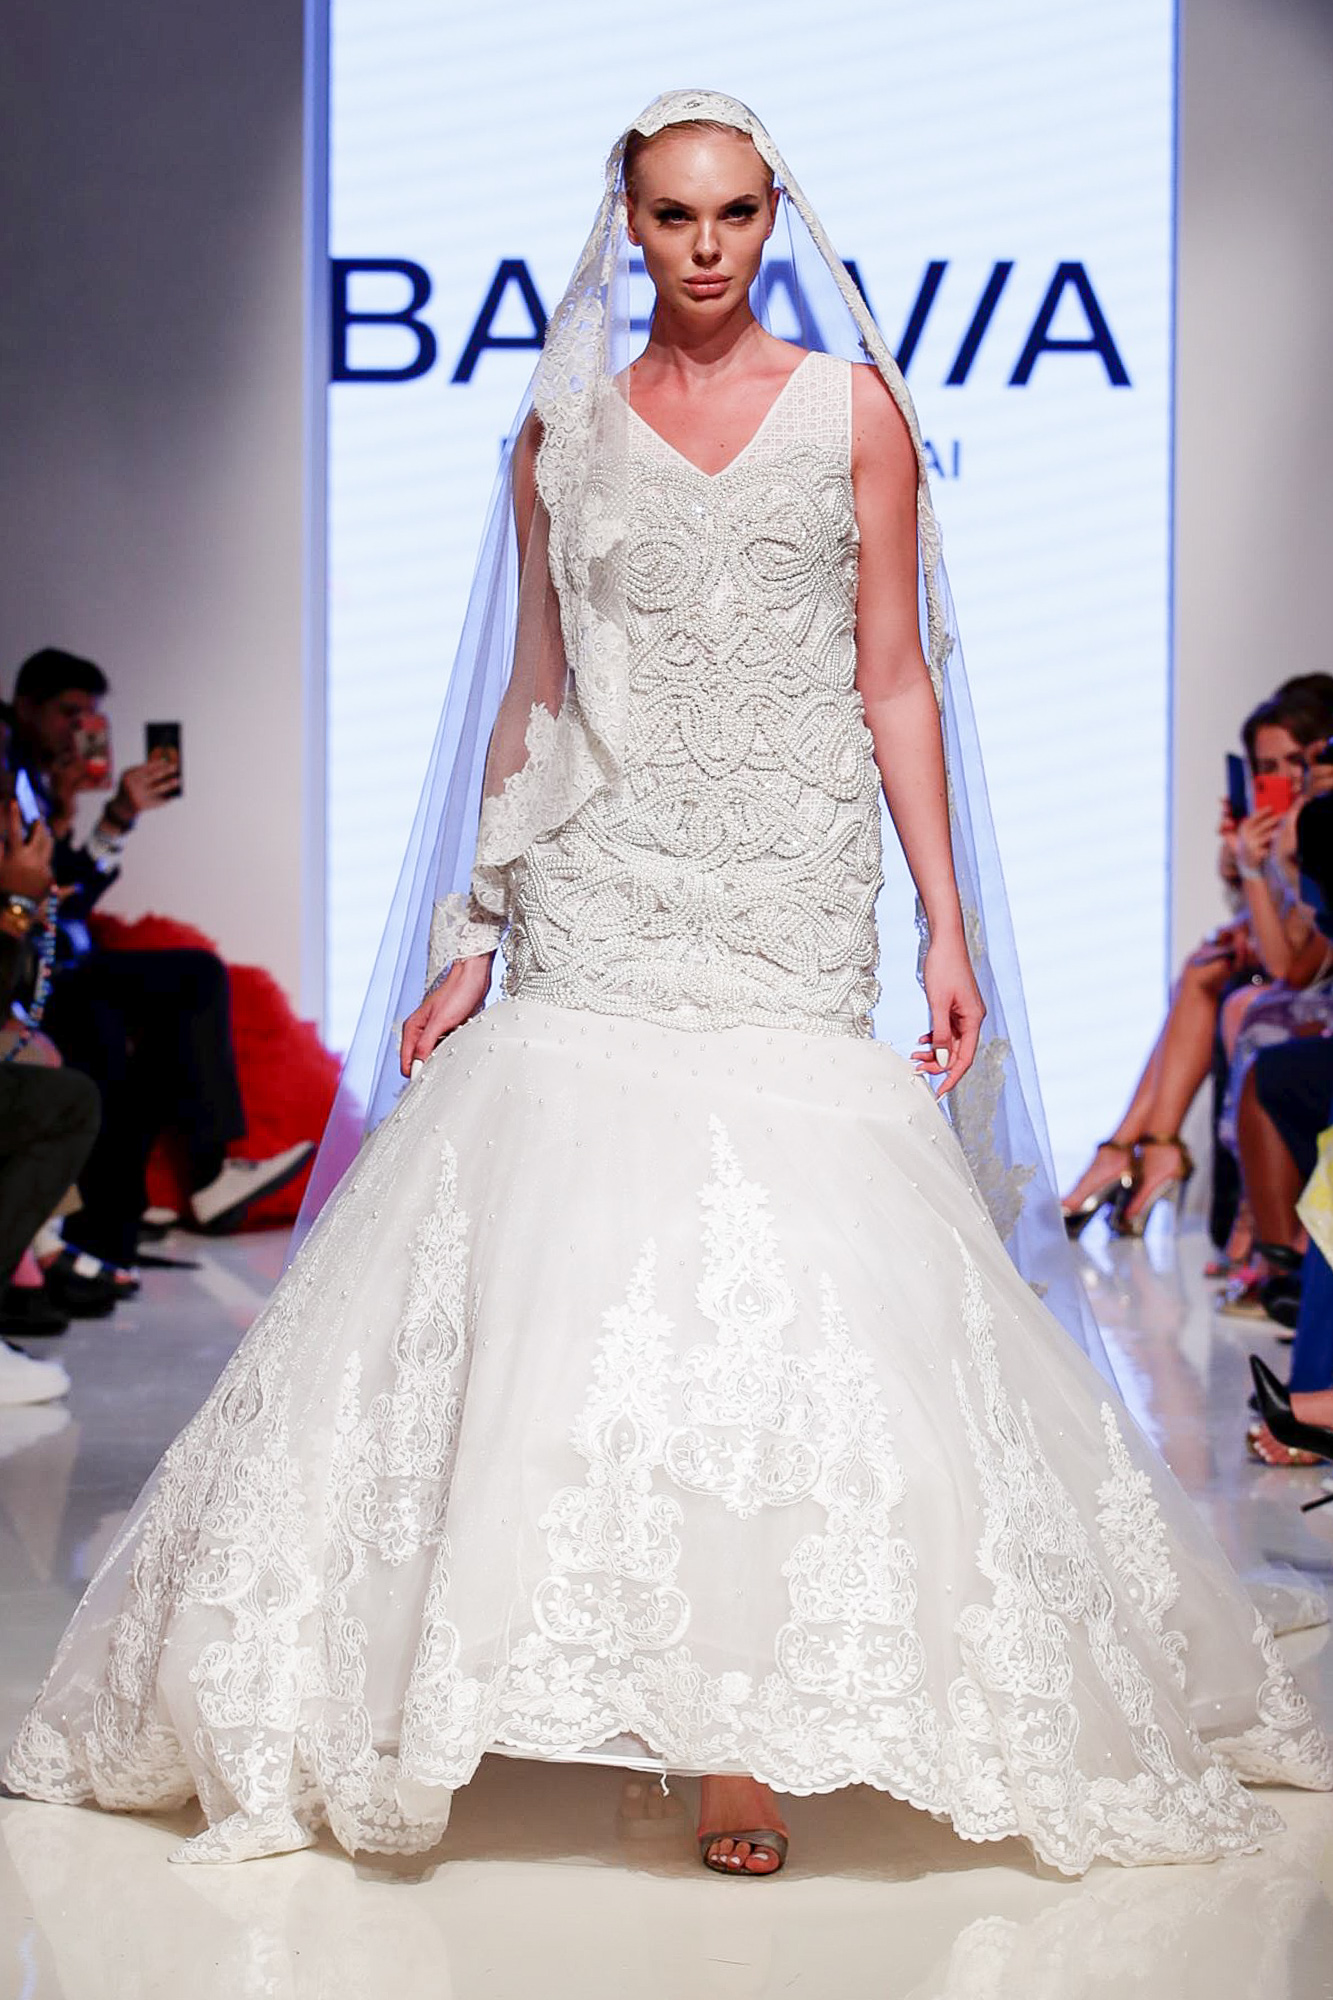 Baravia Couture fashion show, Arab Fashion Week collection Spring Summer 2020 in Dubai